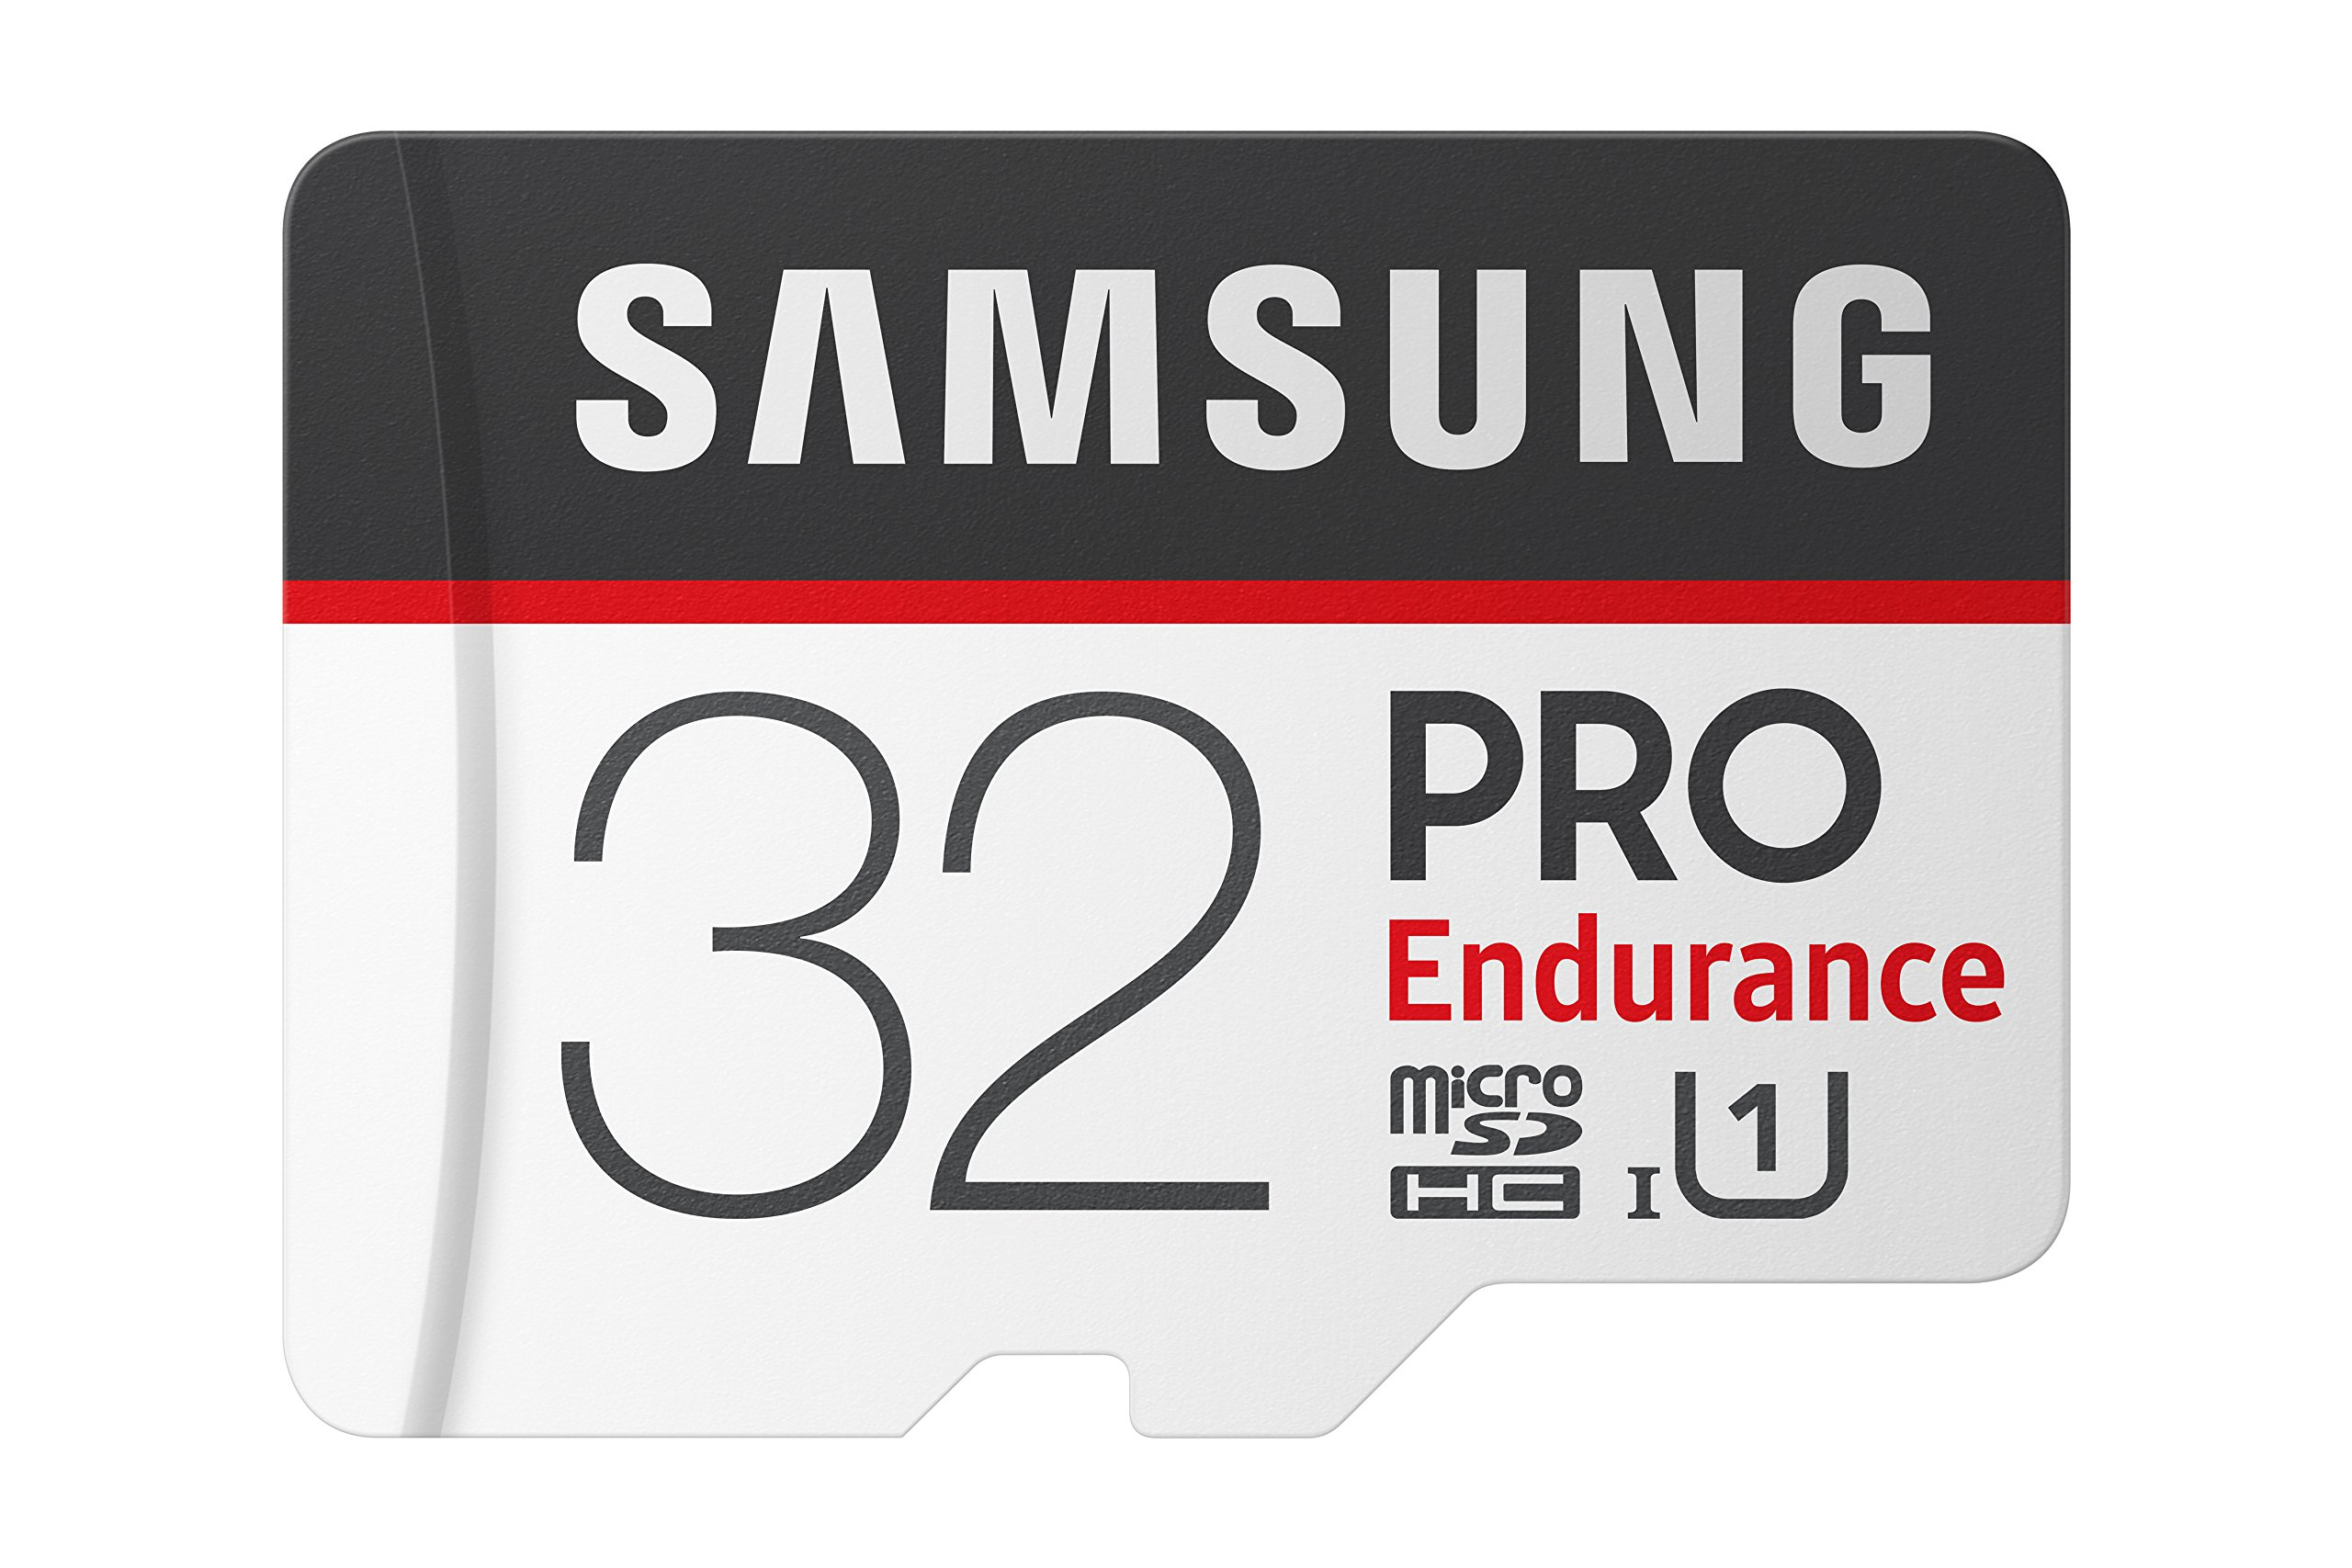 Samsung Pro Endurance 32gb Micro Sdhc Card With Adapter -..